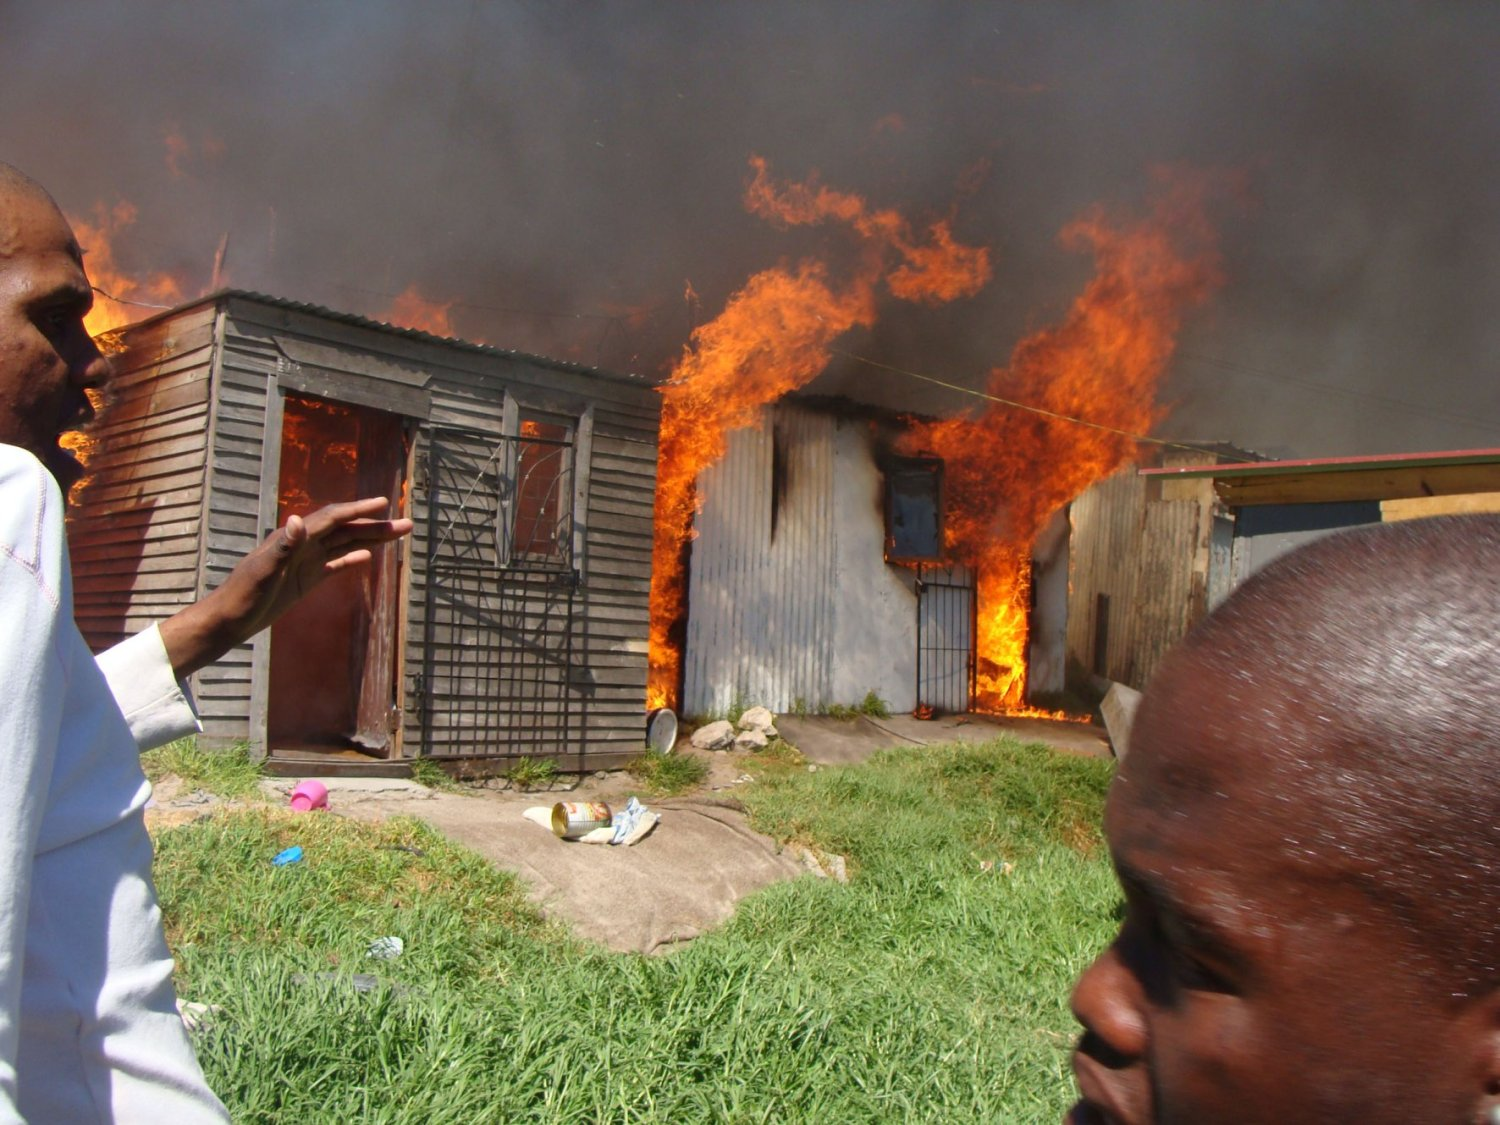 Shack fires ravage Cape Town